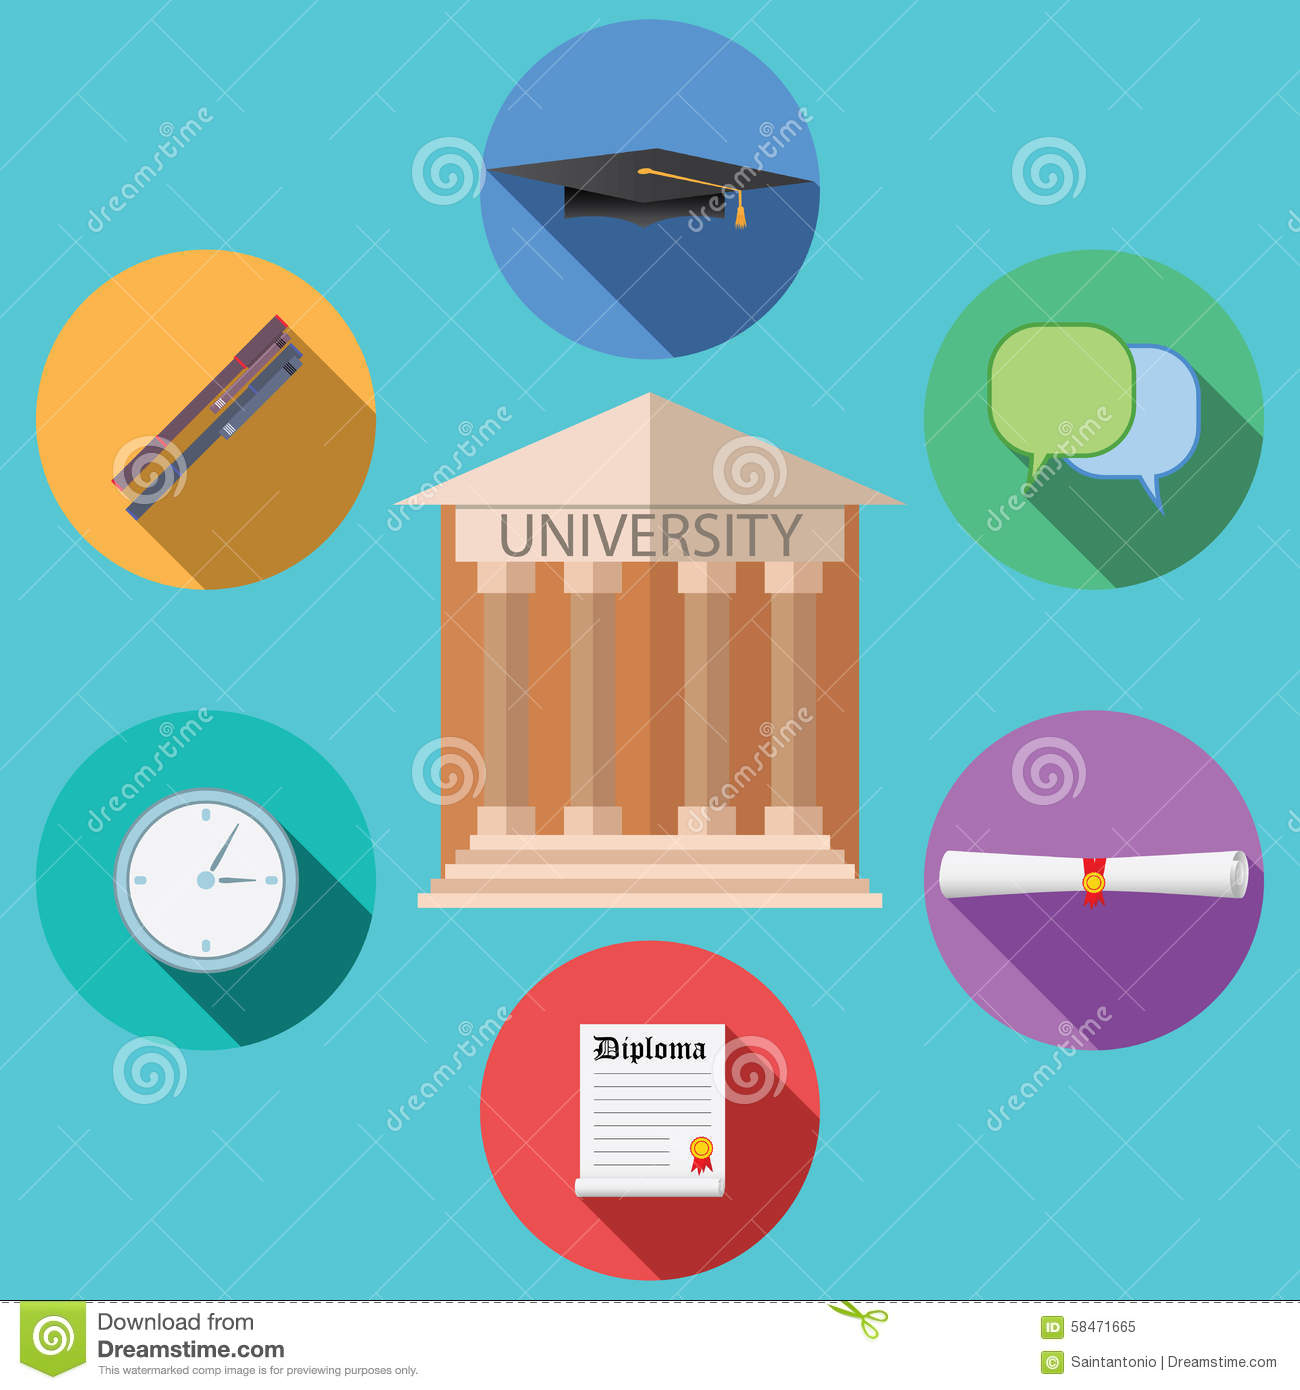 flat design vector illustration concept for online job search on flat design vector illustration concept for online job search on computer concepts of hands holding